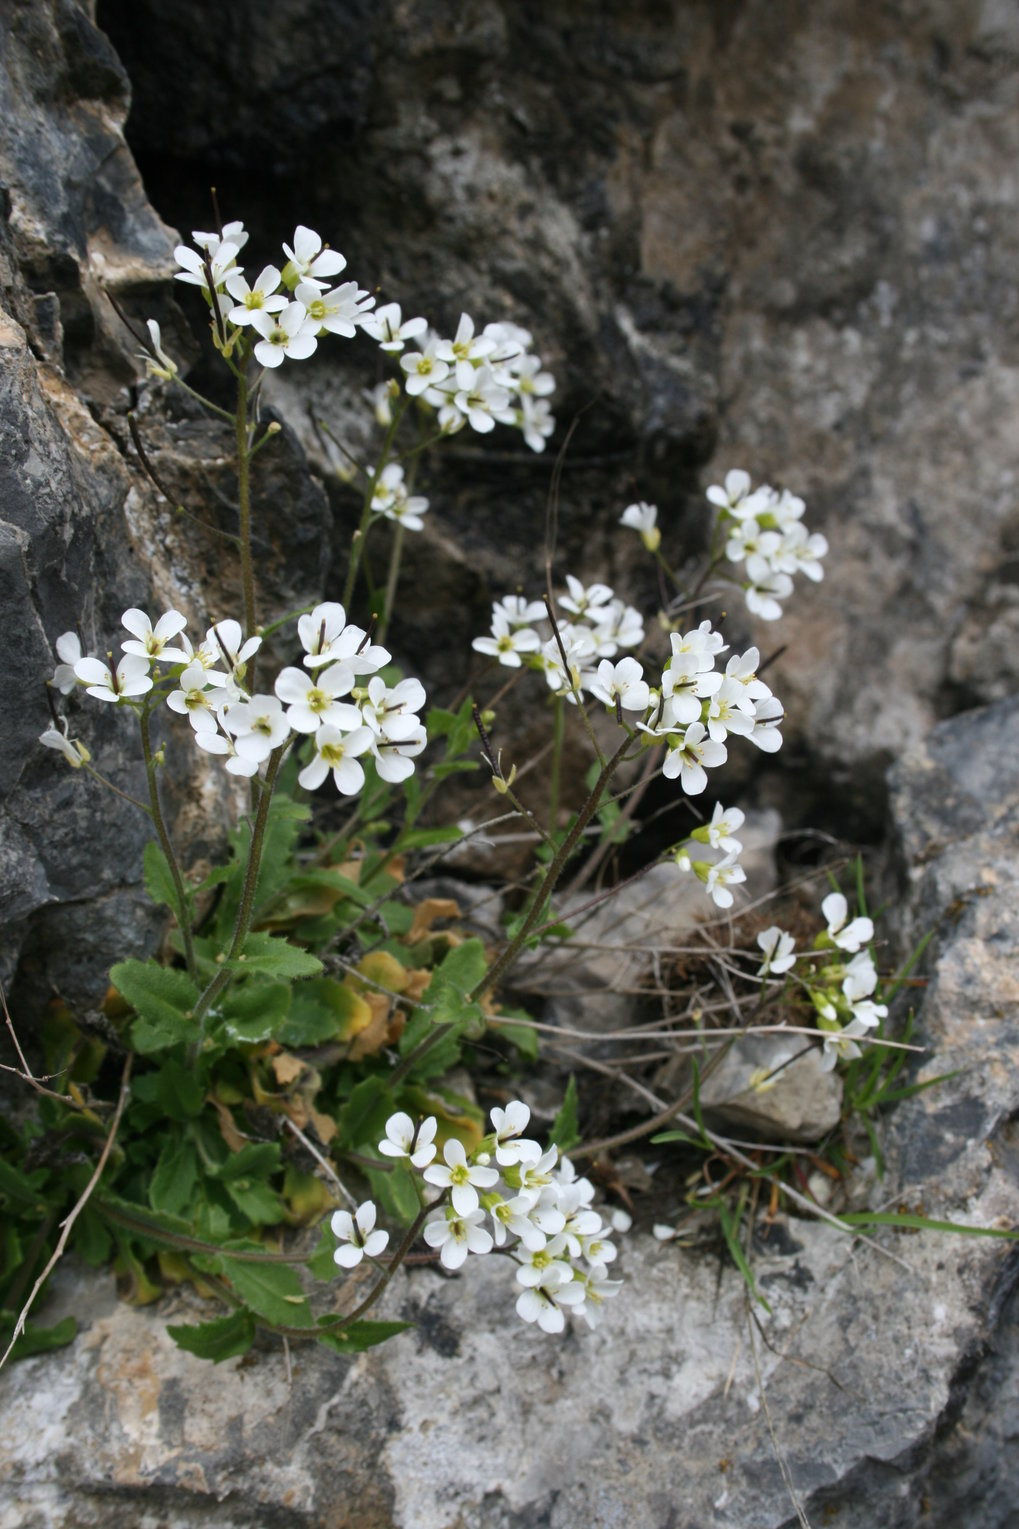 The alpine rock-cress is a perennial herbaceous species which can be found up to 3000 meters above sealeavel. A sophisticated genetic mechanism ensure